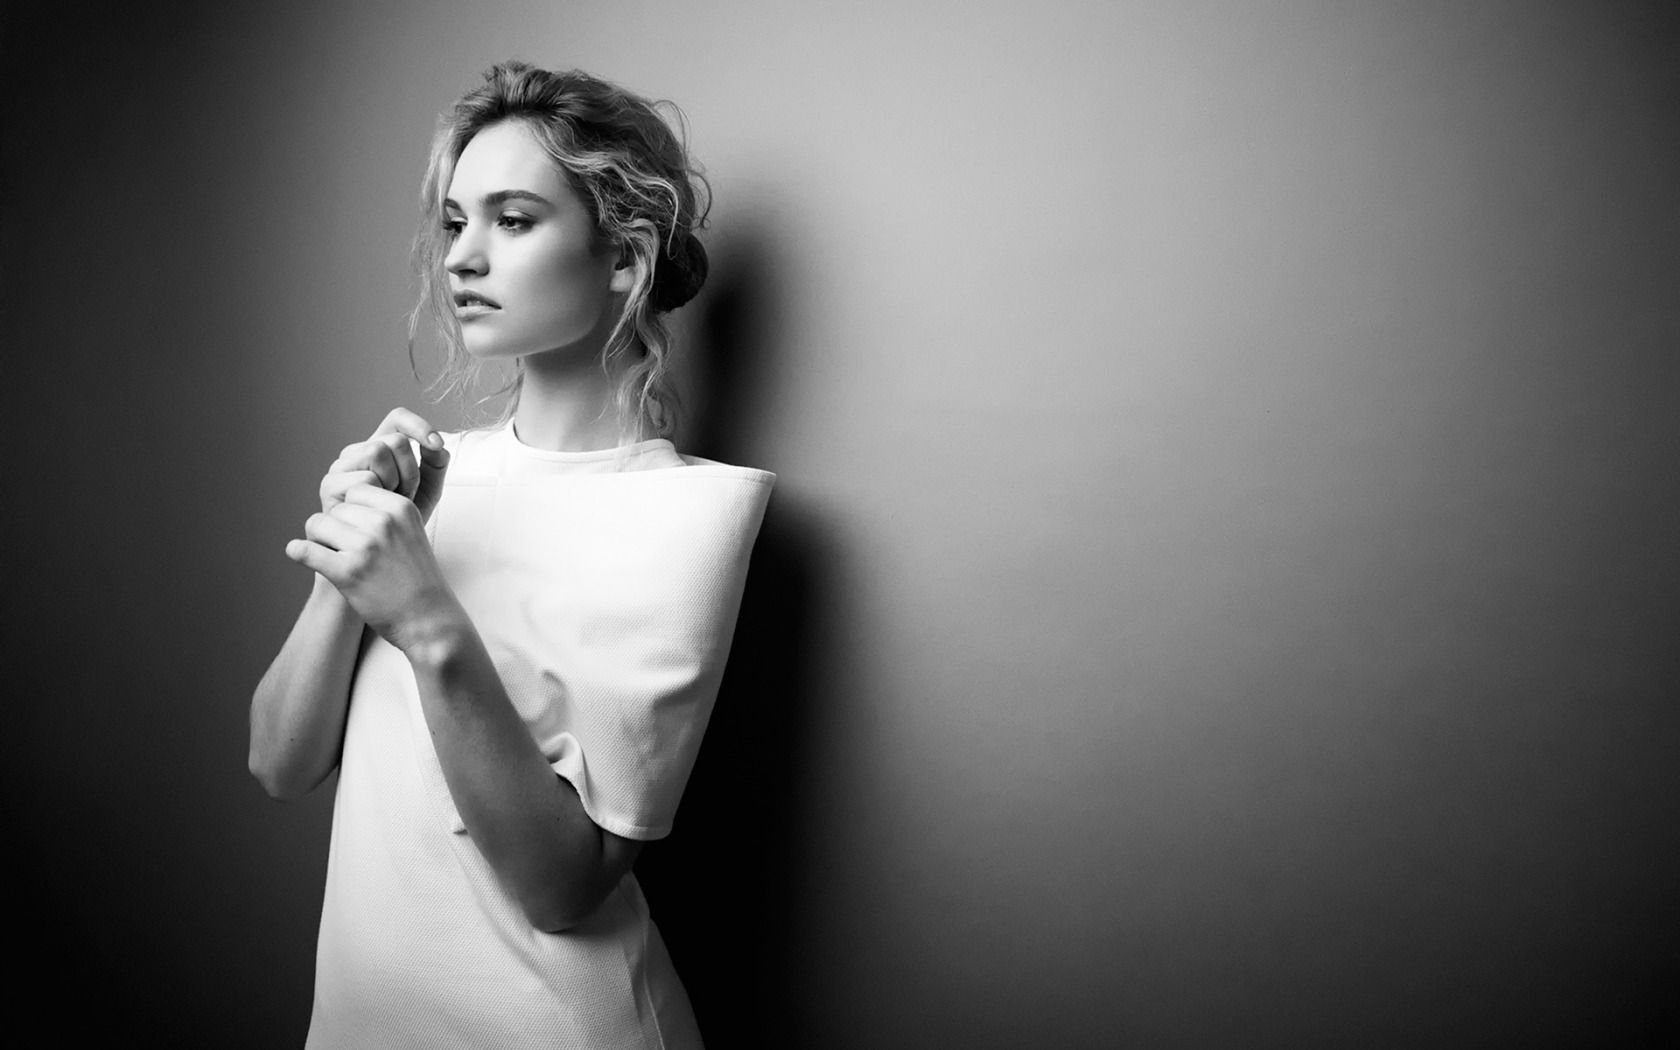 Lily James Hd Hd Wallpaper Lily James Actress Lily James Black And White Portraits